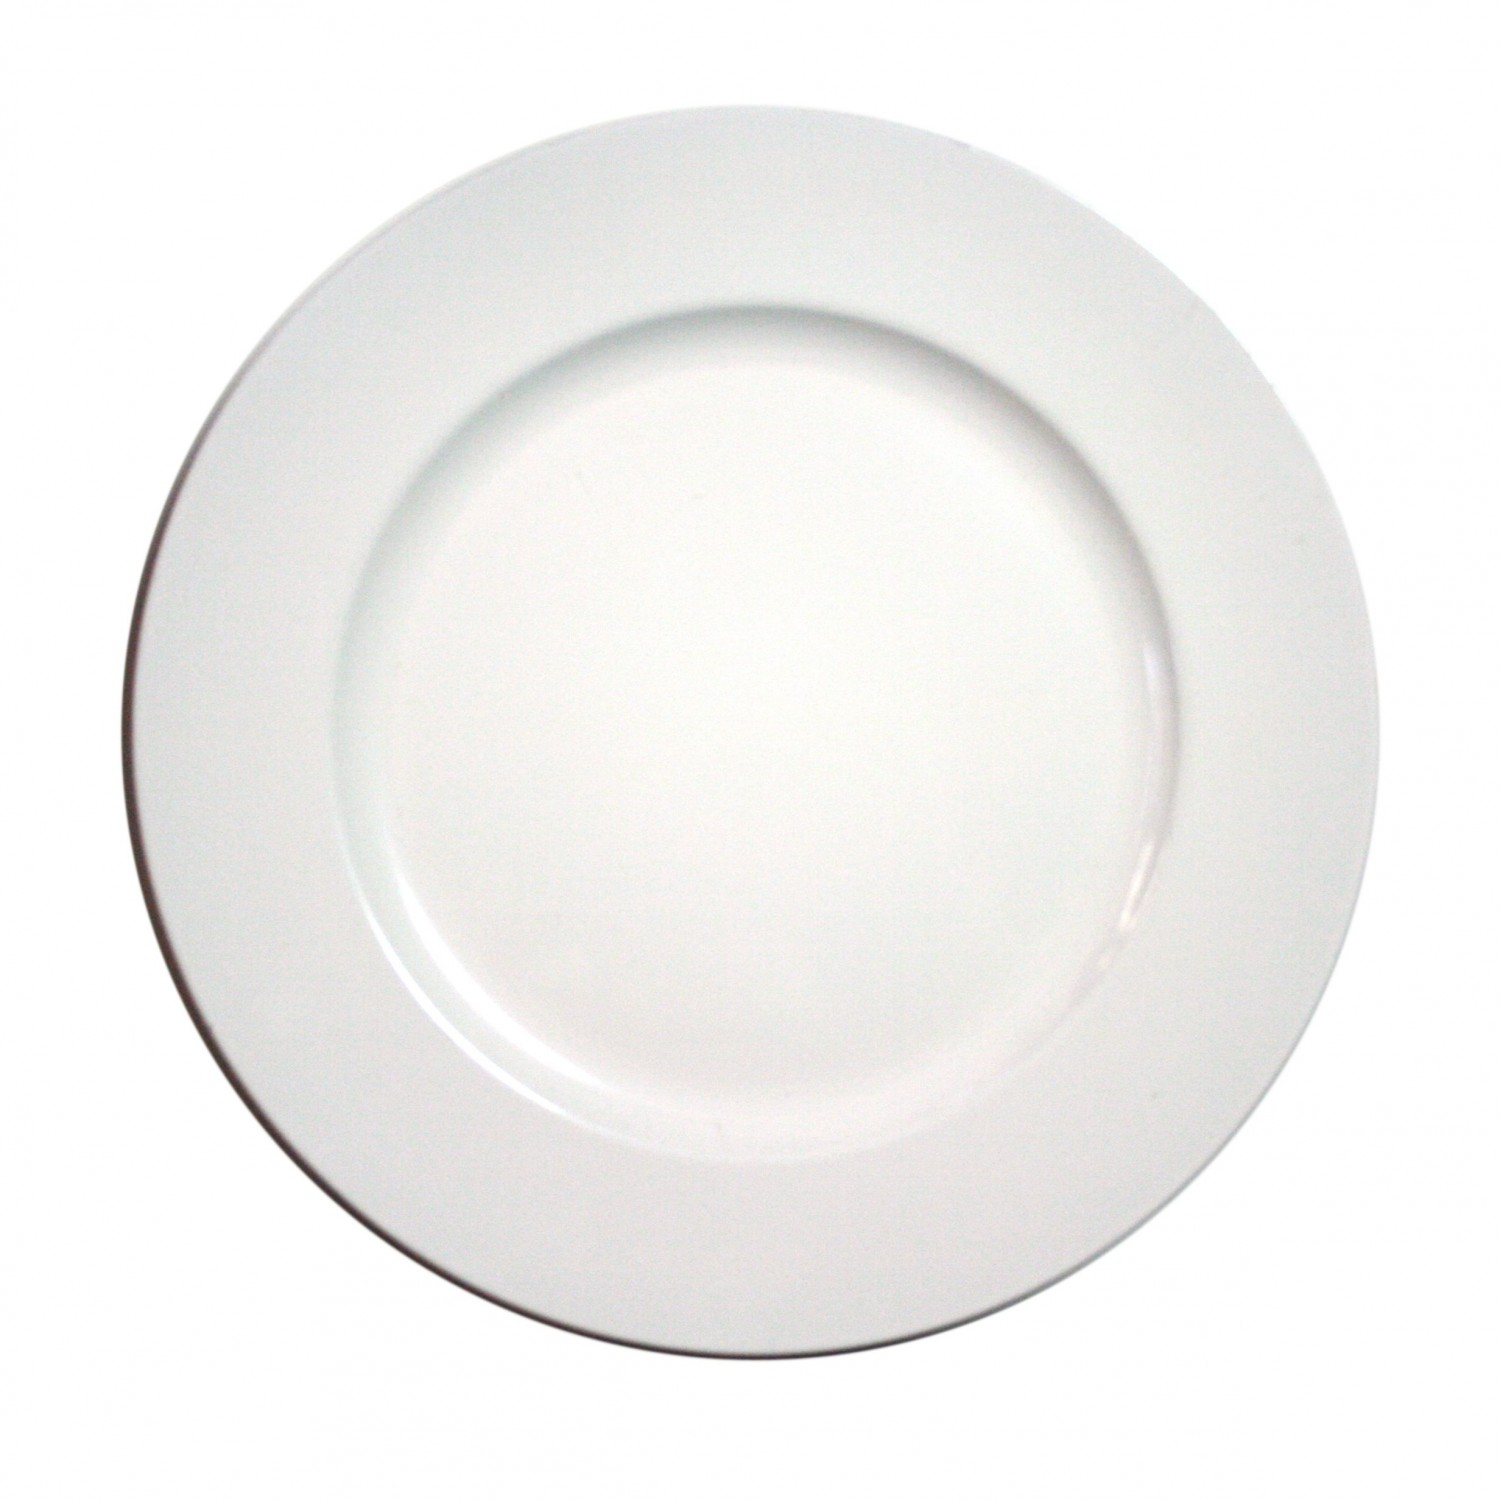 The Jay Companies 1428008BK Round White Melamine Charger Plate 13""